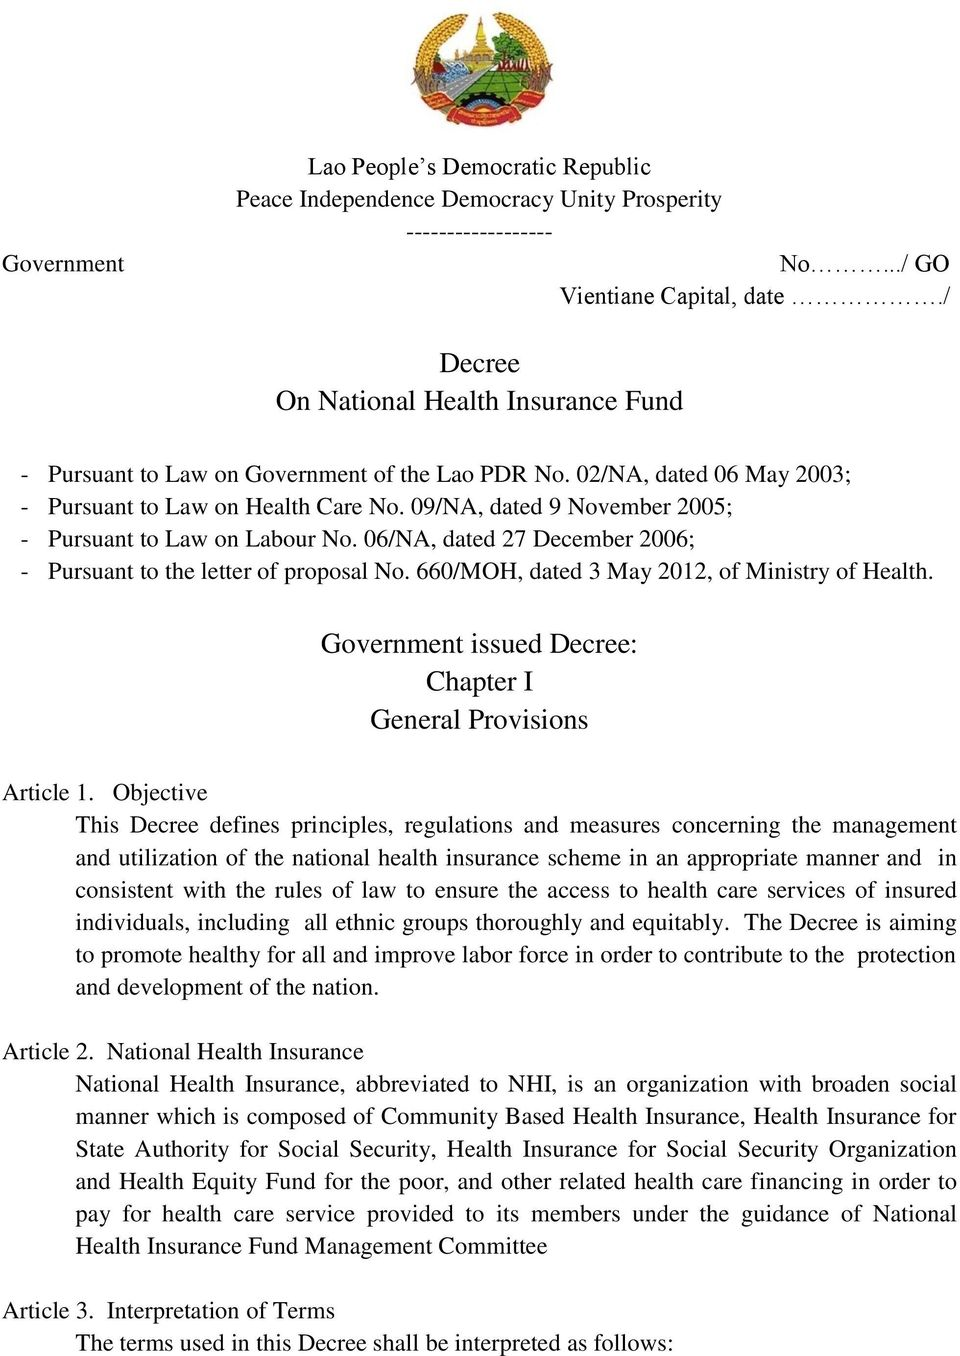 09/NA, dated 9 November 2005; - Pursuant to Law on Labour No. 06/NA, dated 27 December 2006; - Pursuant to the letter of proposal No. 660/MOH, dated 3 May 2012, of Ministry of Health.